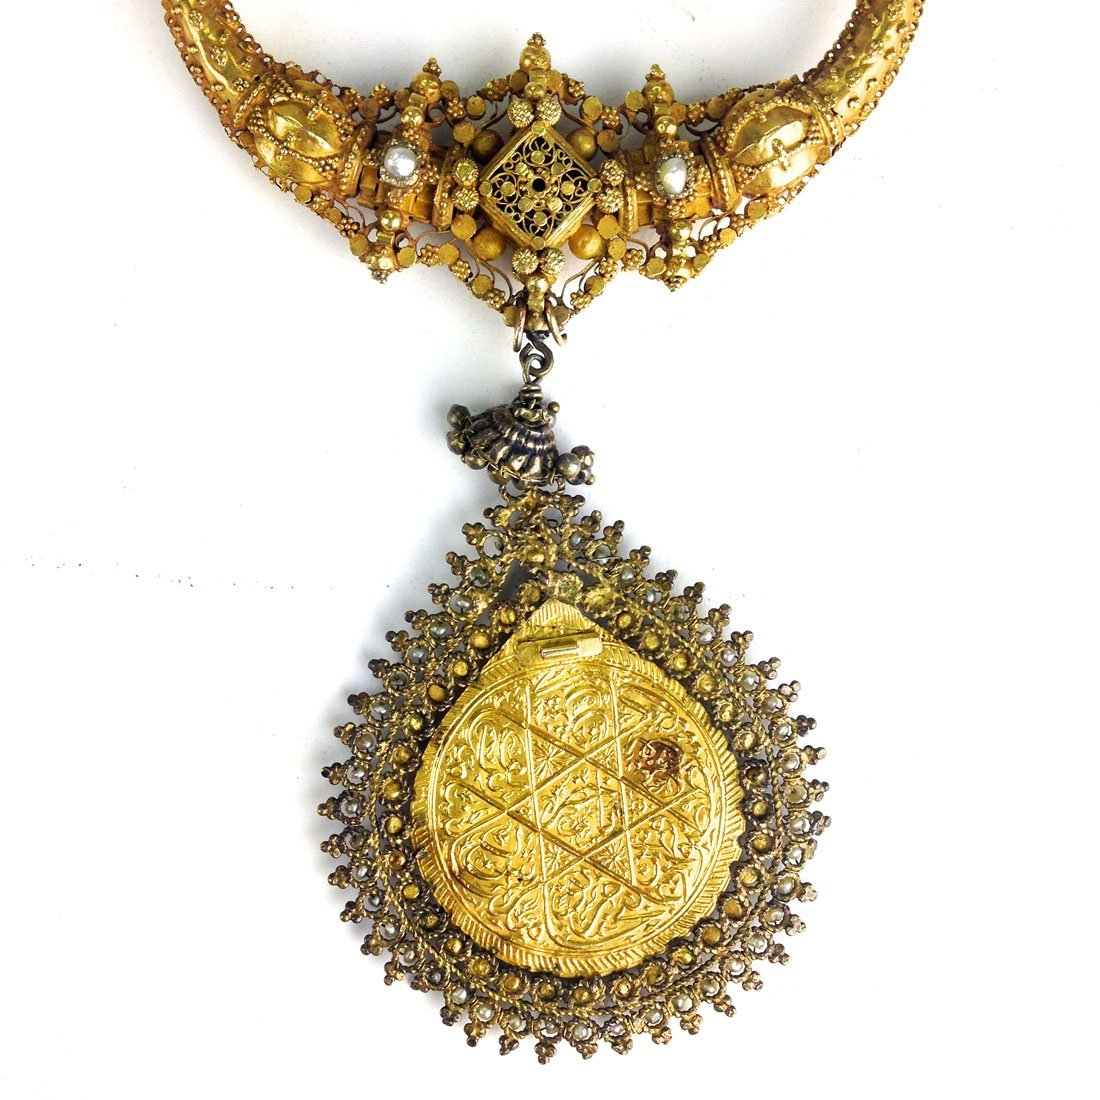 Indo Persian yellow gold necklace and pendant (tests